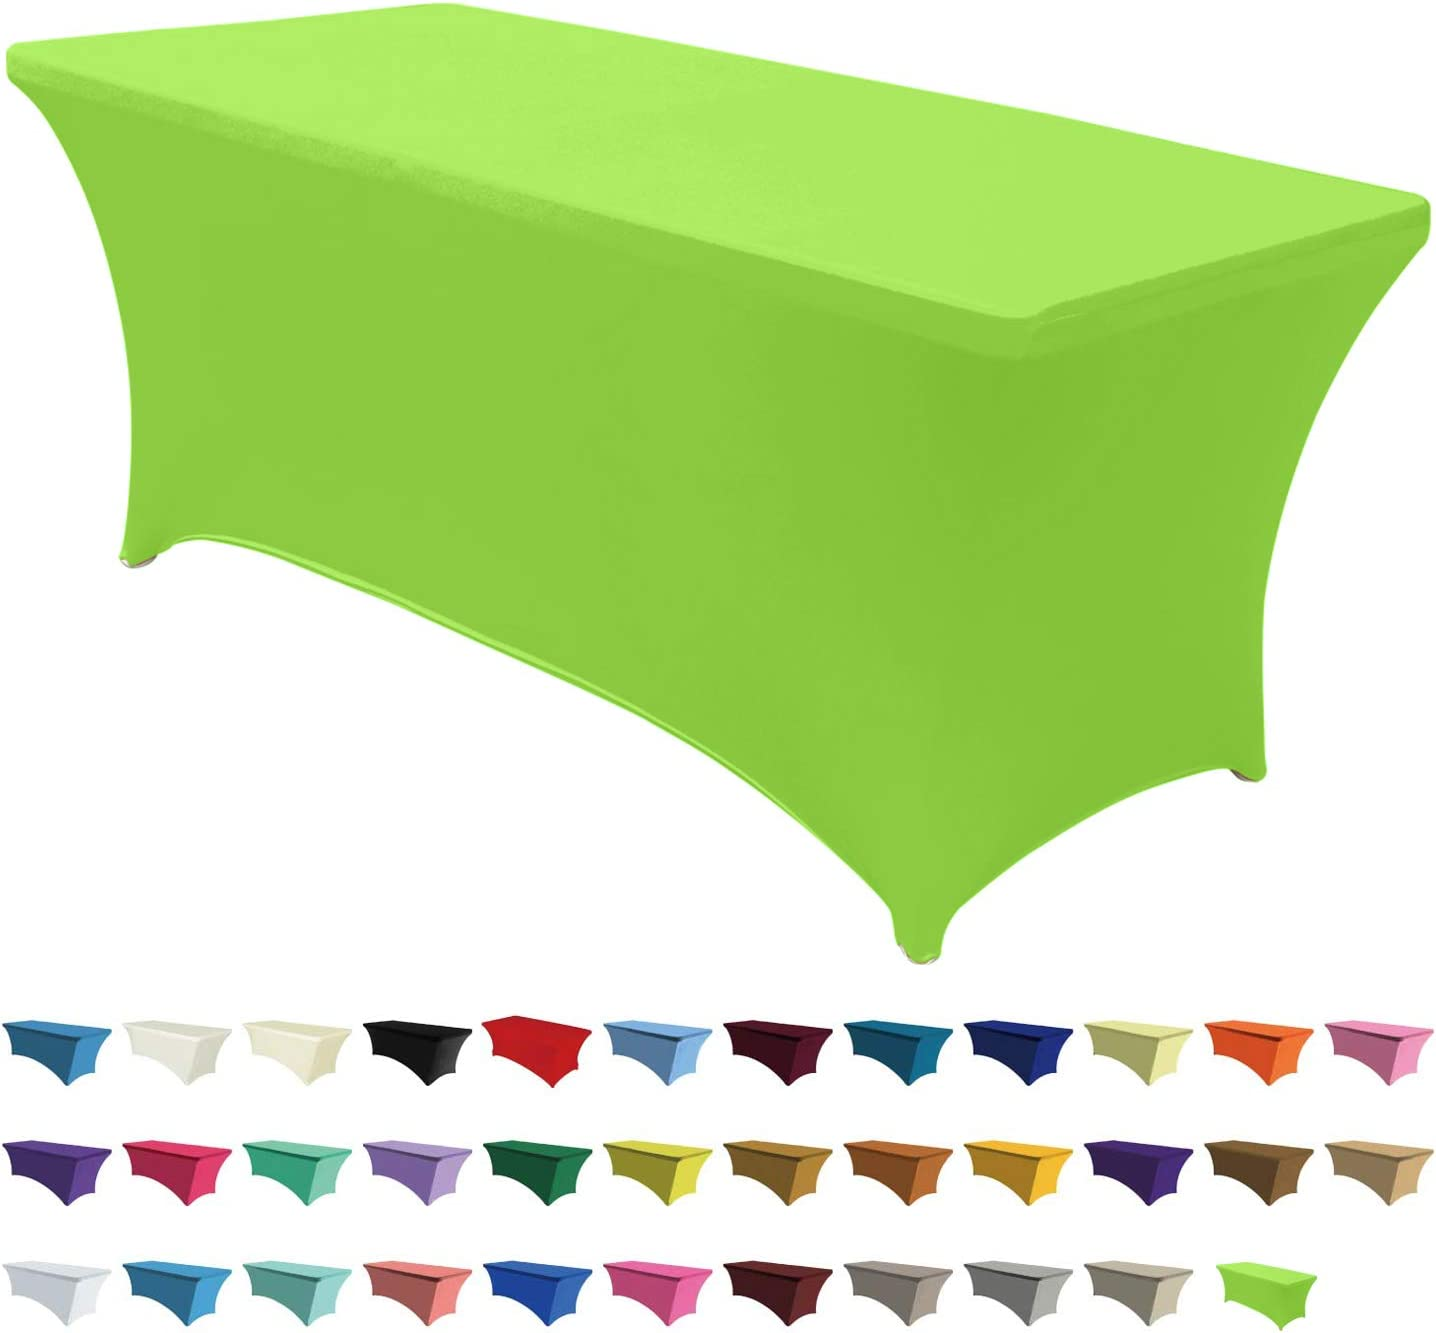 ABCCANOPY Spandex Tablecloths for 4 ft Home Rectangular Table Fitted Stretch Table Cover Polyester Tablecover Table Toppers